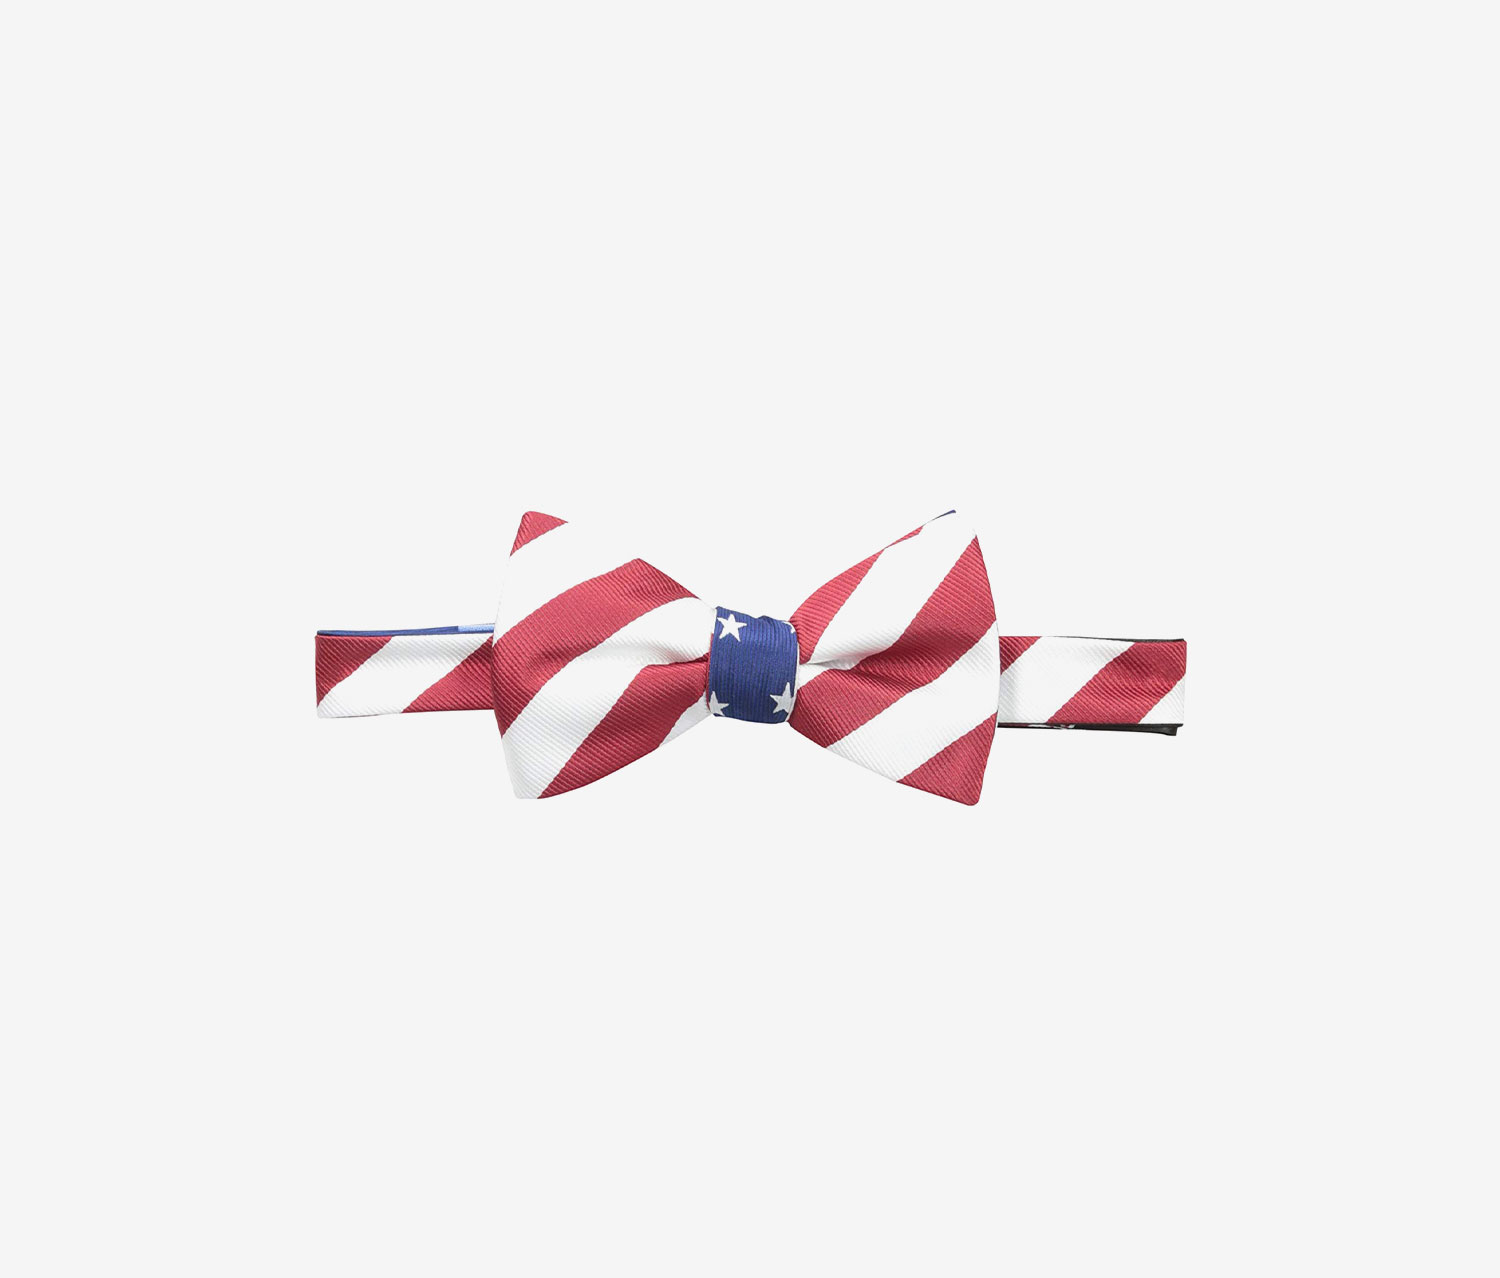 Countess Mara Stars Stripes Self-Tie Bow Tie, Navy/Red